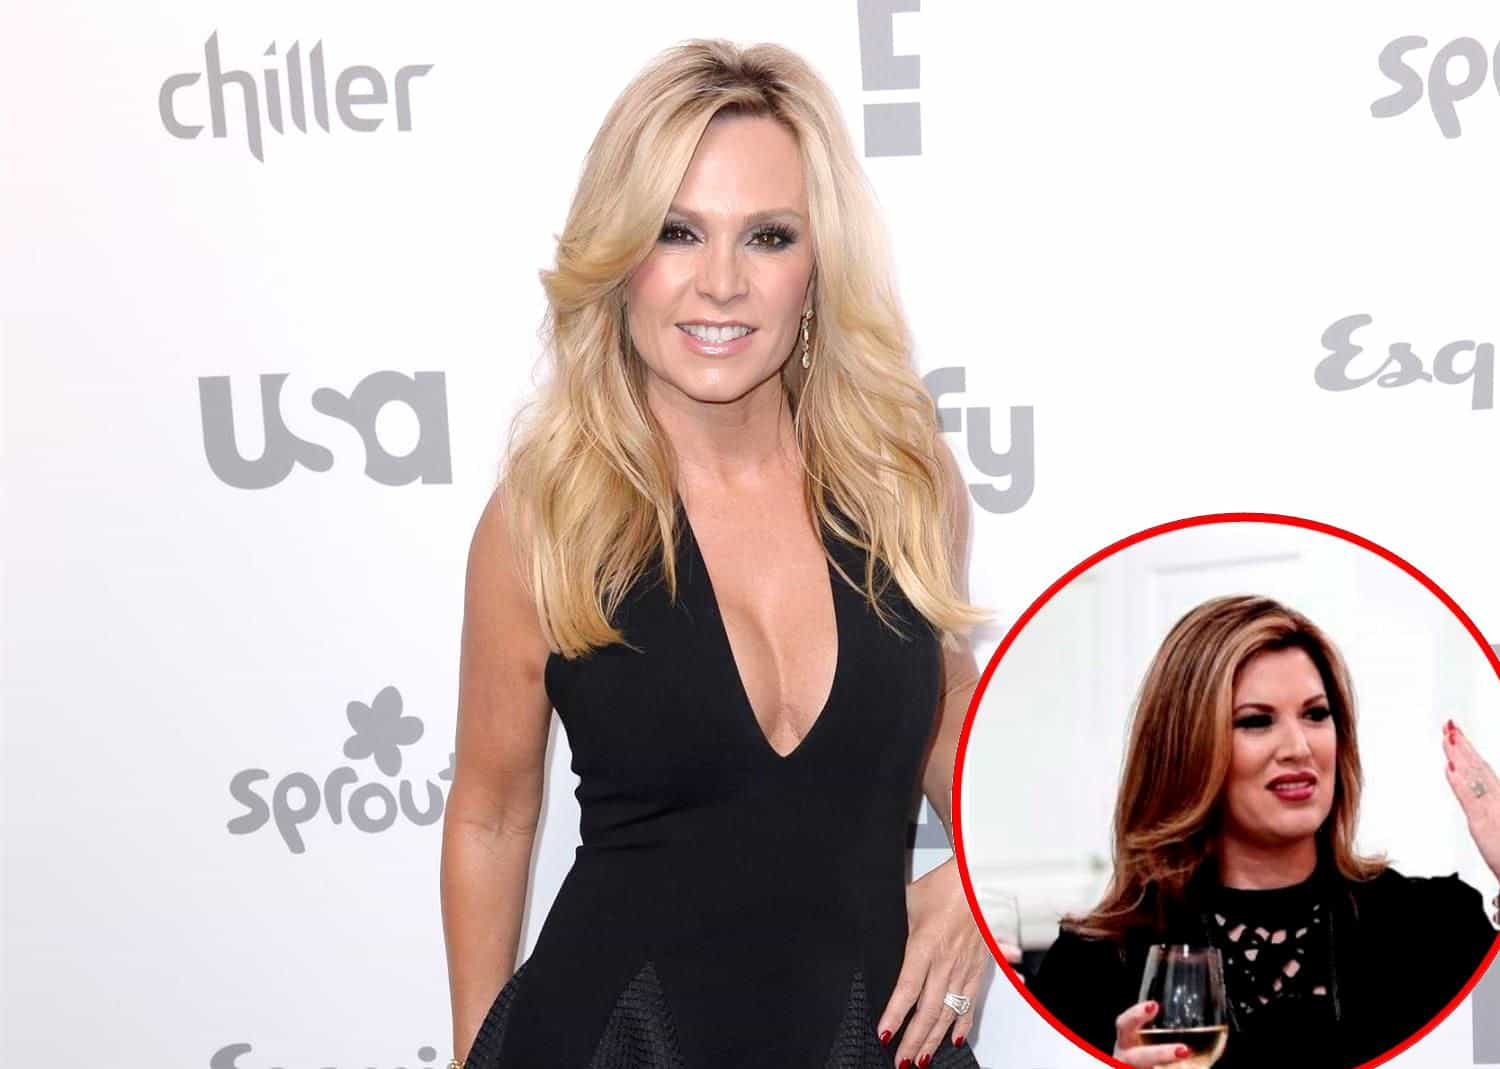 RHOC Tamra Judge wants Emily Simpson Fired